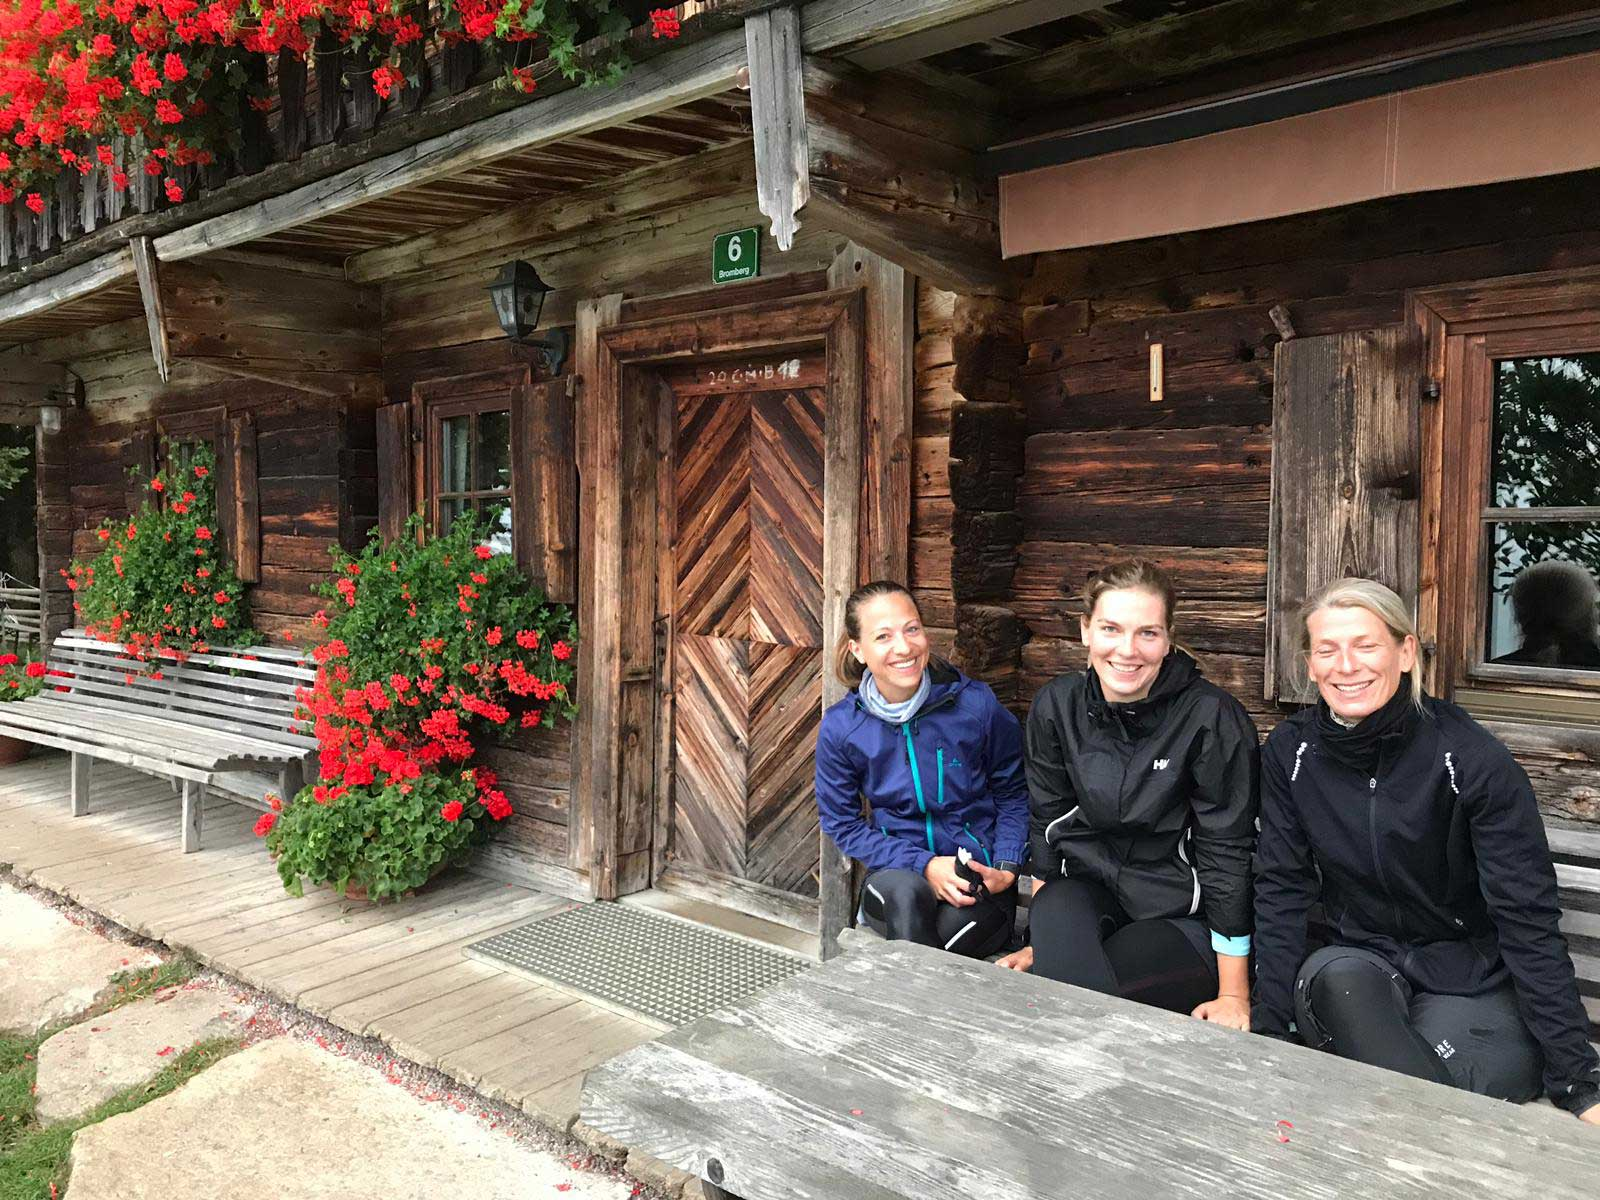 trailrunning-besprechung-wilder-kaiser-munichmountaingirls